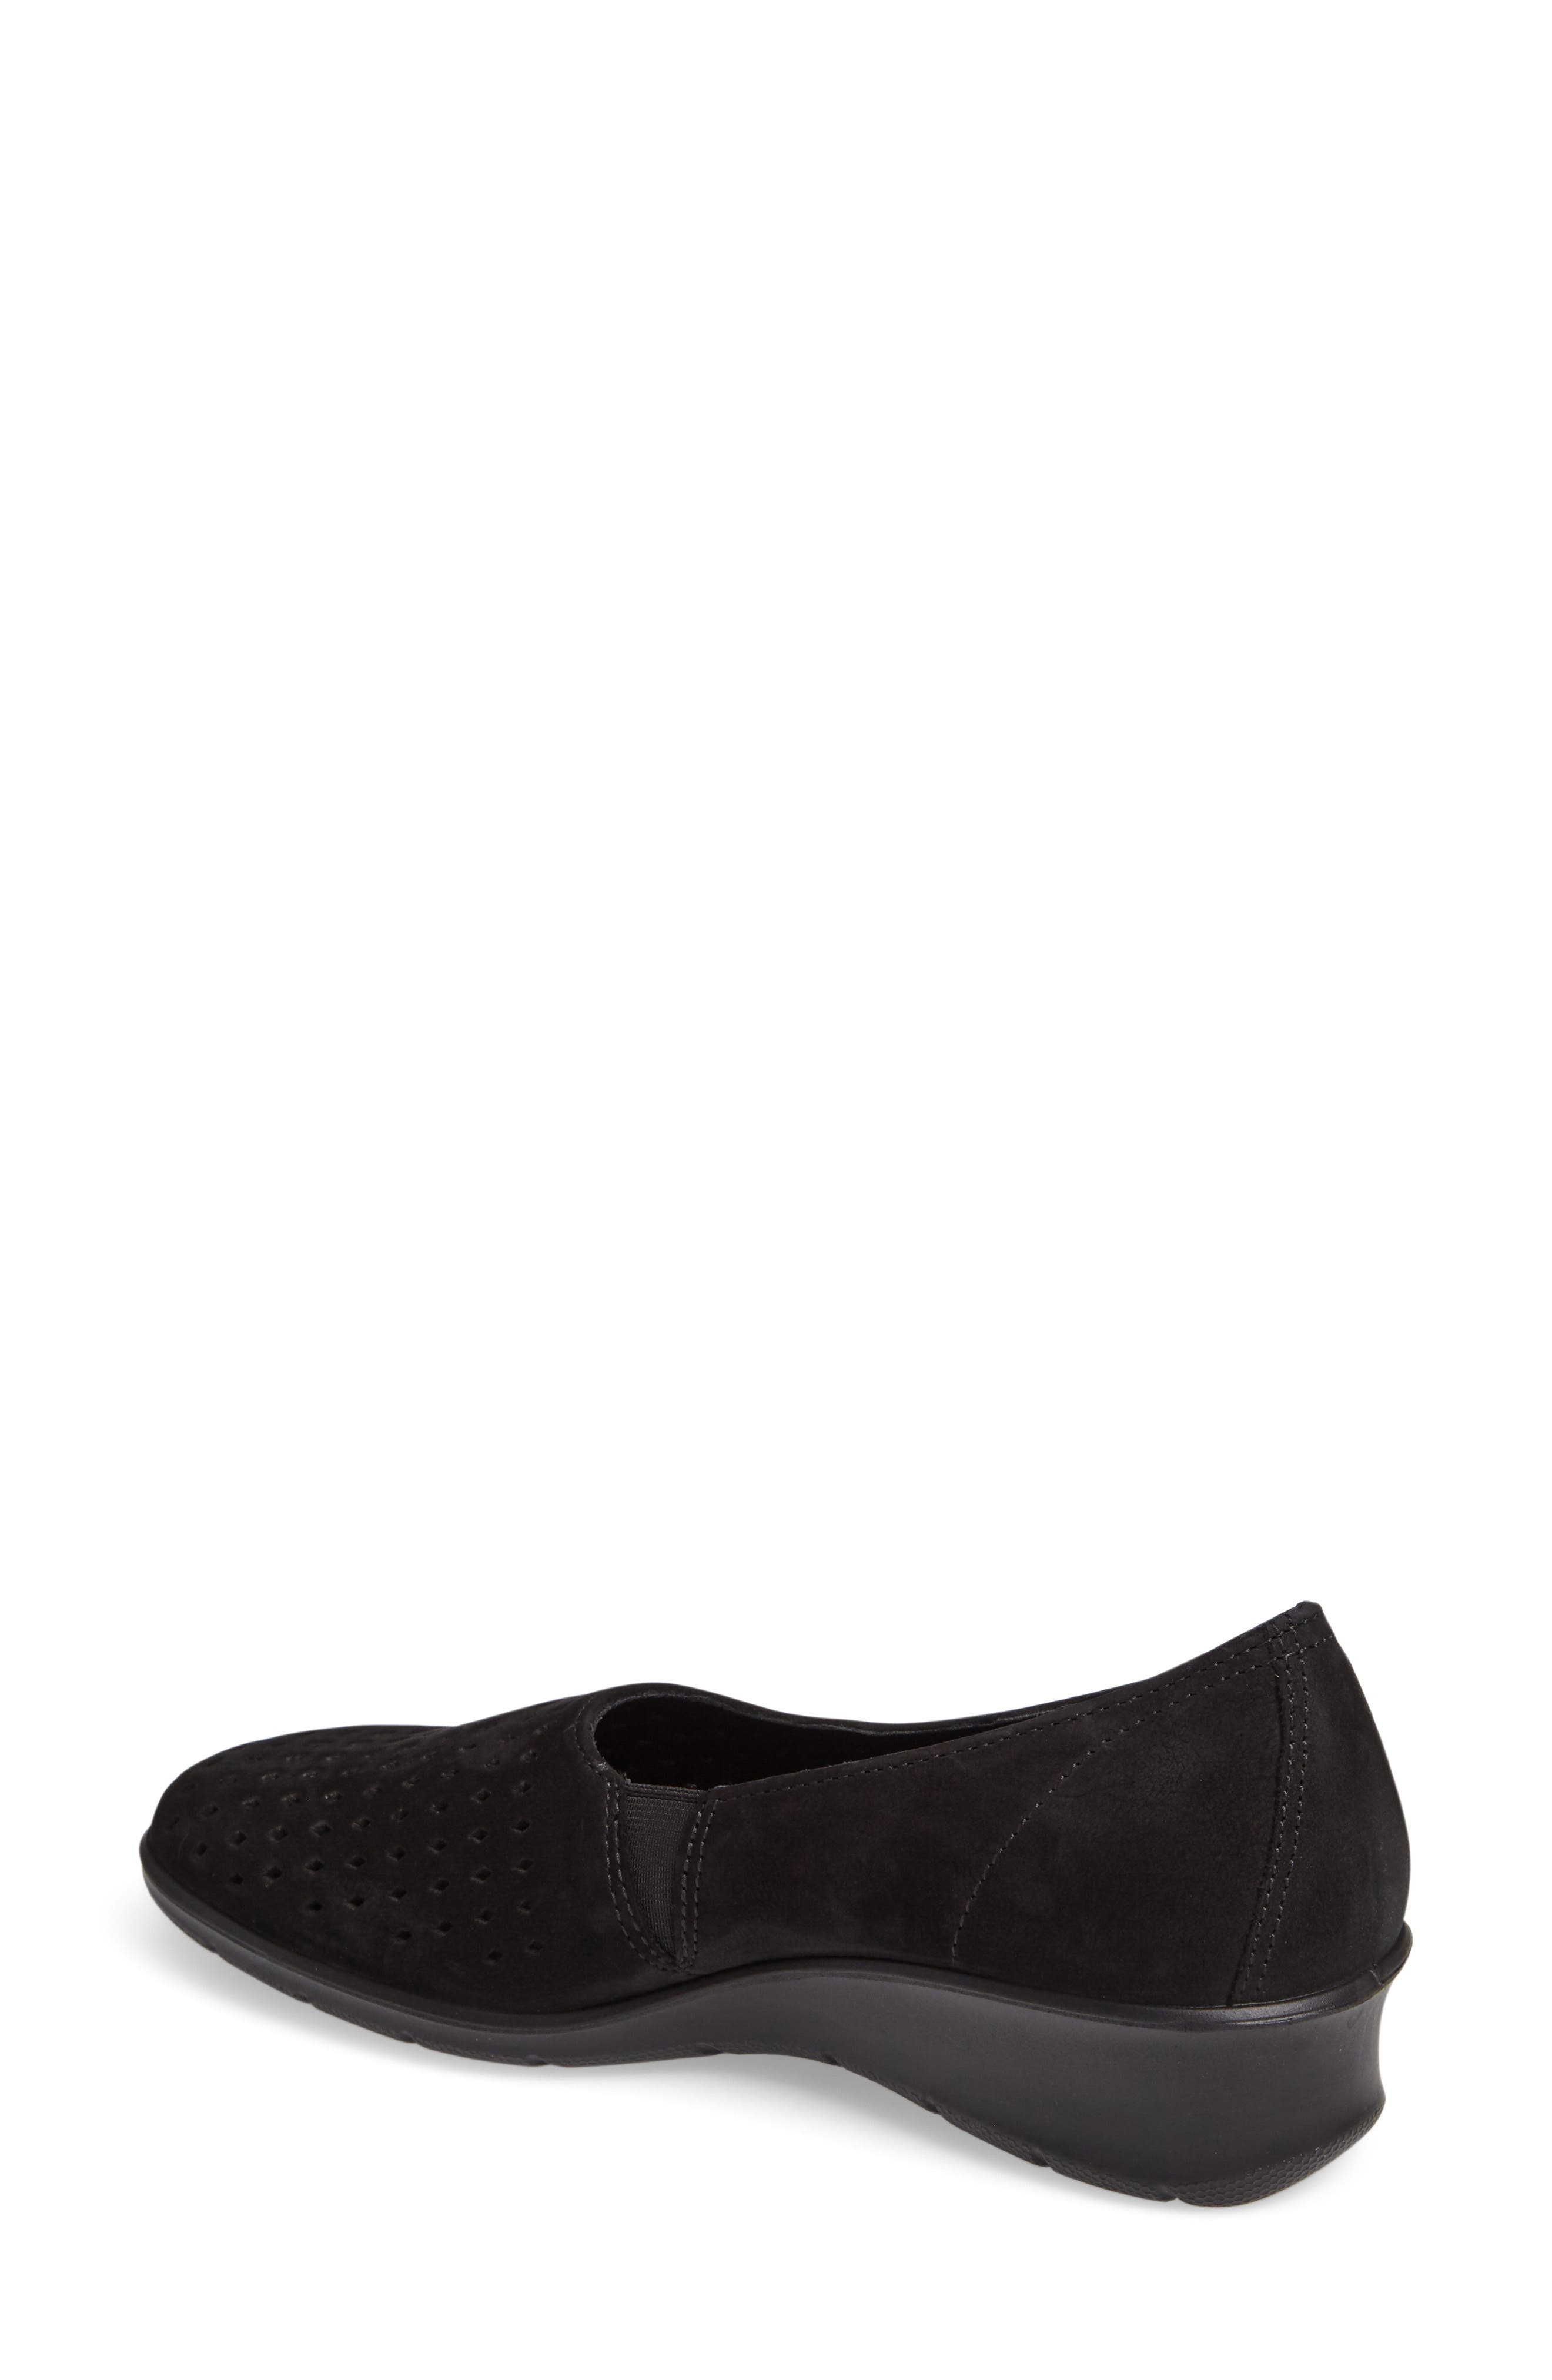 Felicia Summer Loafer,                             Alternate thumbnail 2, color,                             Black Leather